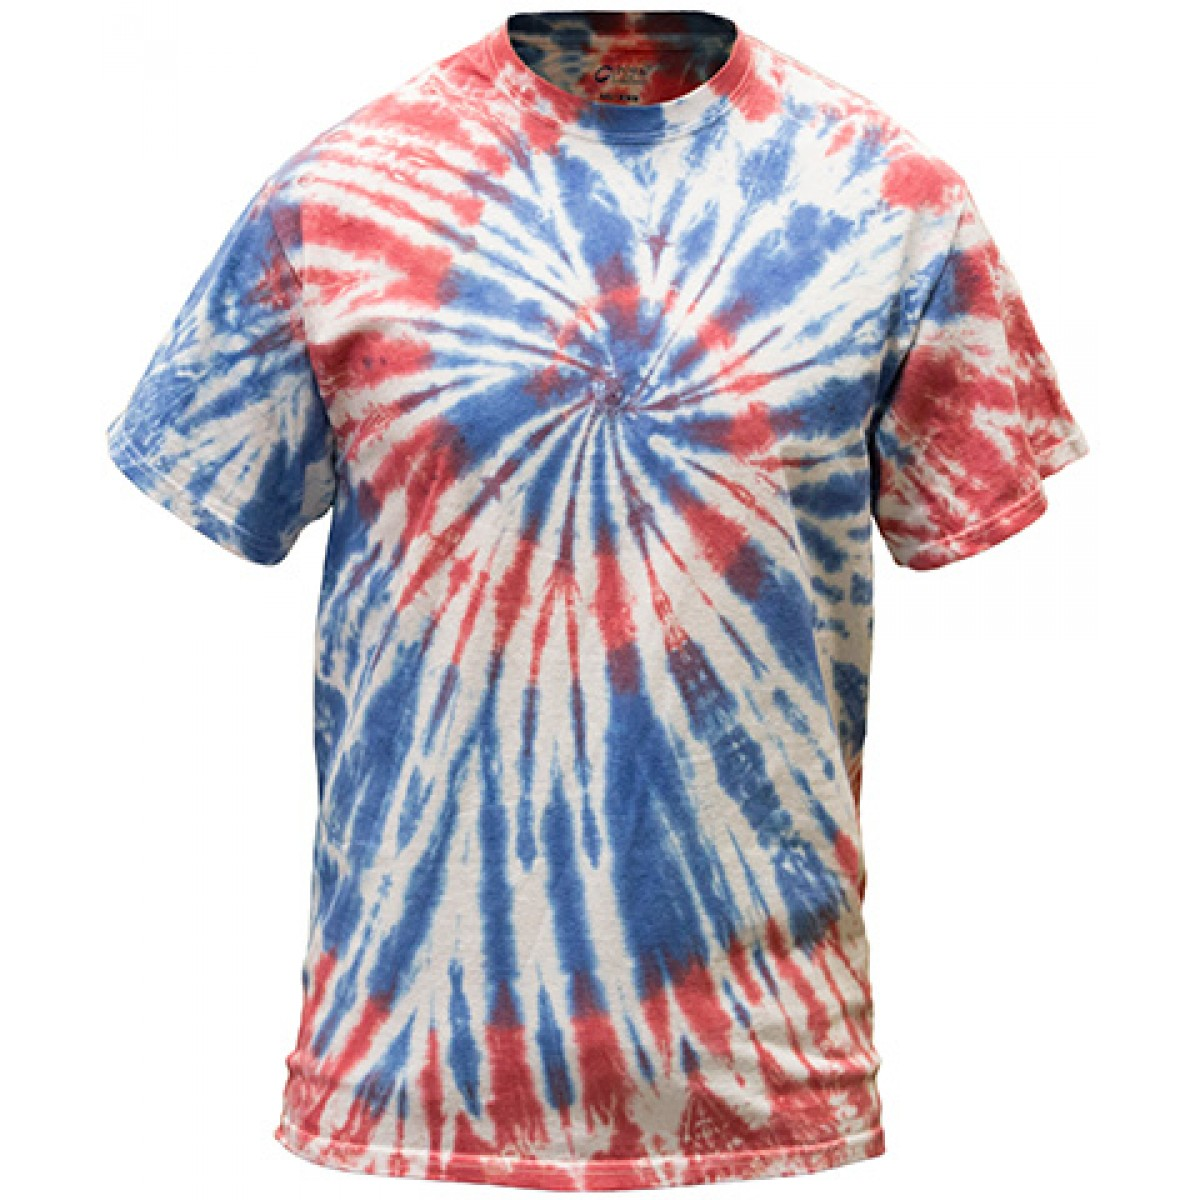 Multi-Color Tie-Dye Tee -Red/White/Blue-S